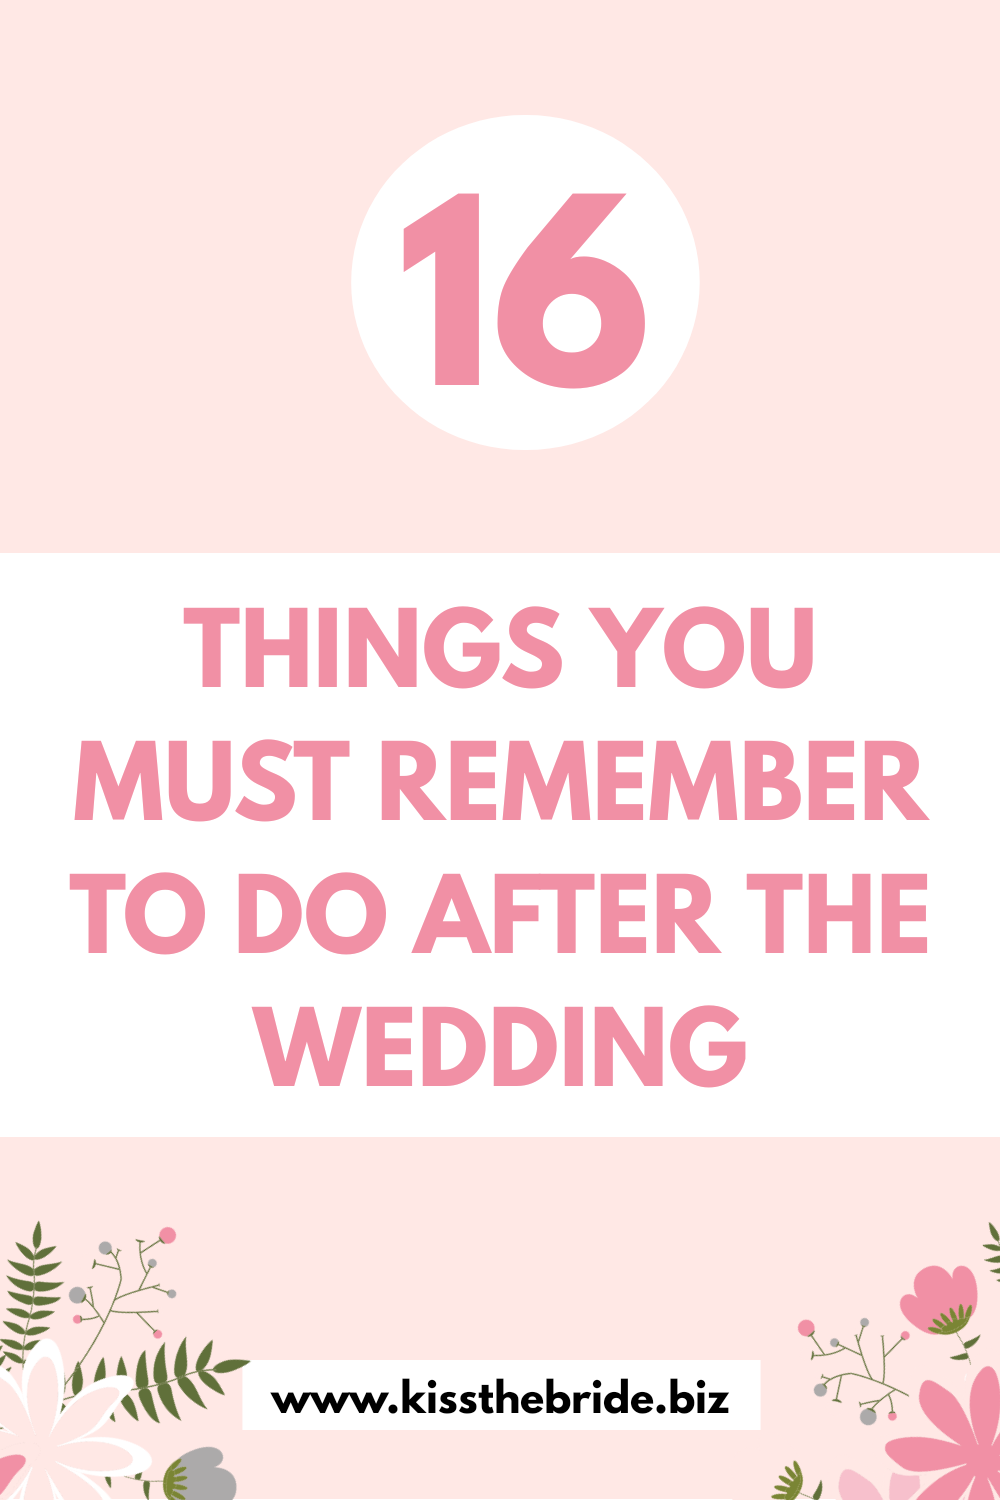 Things you must do after the wedding